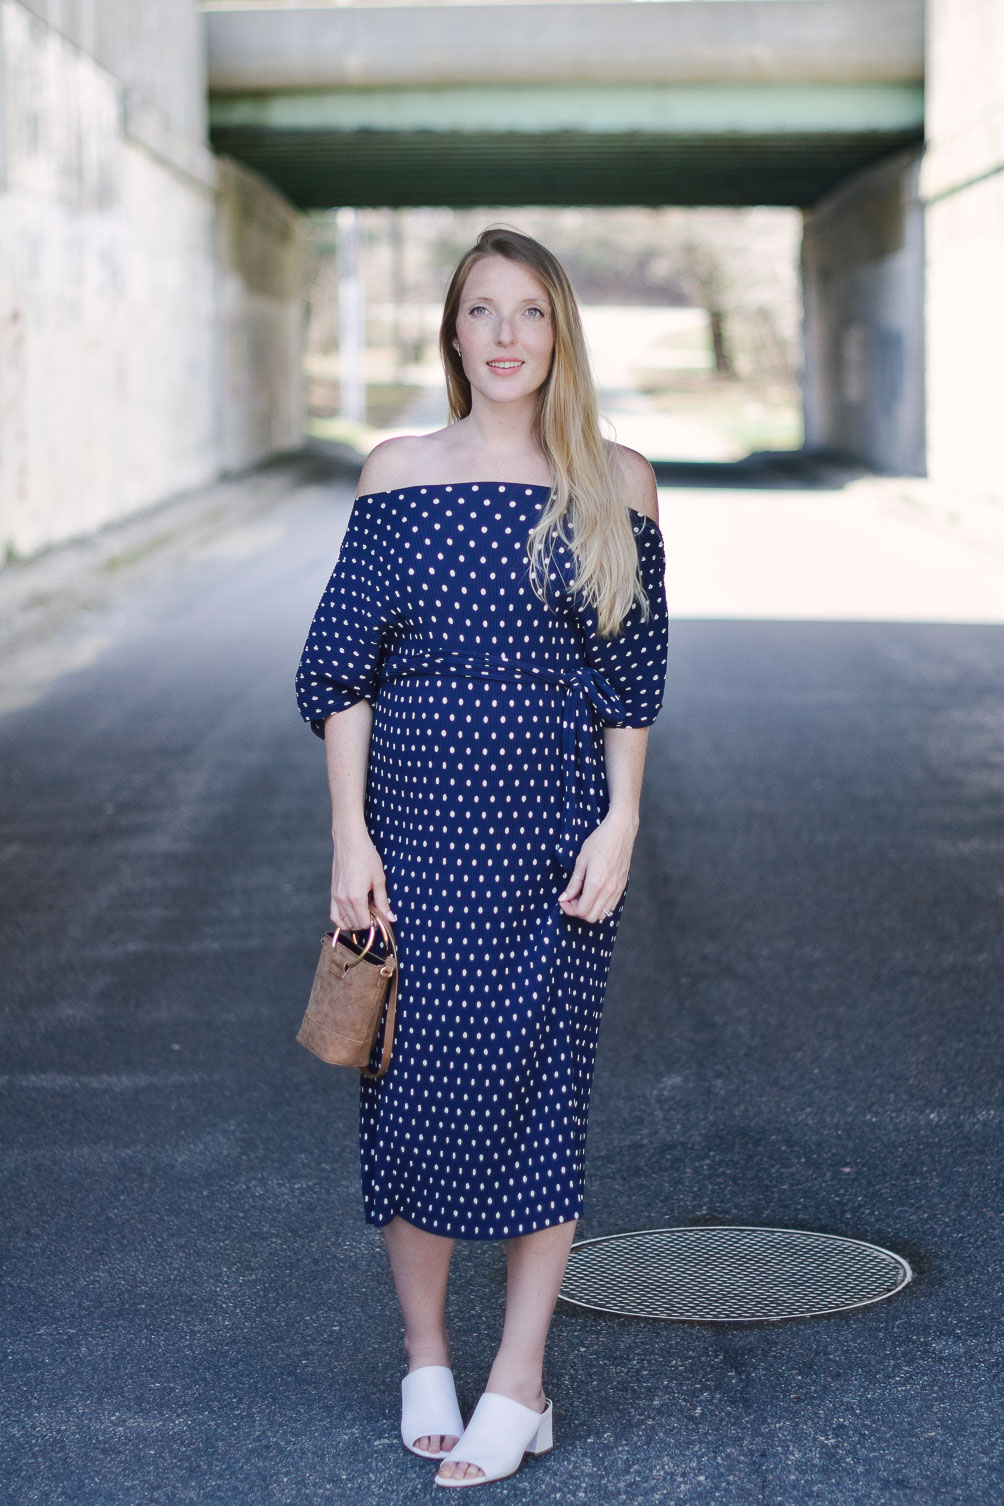 wearing spring maternity style with an off shoulder dress in polka dots